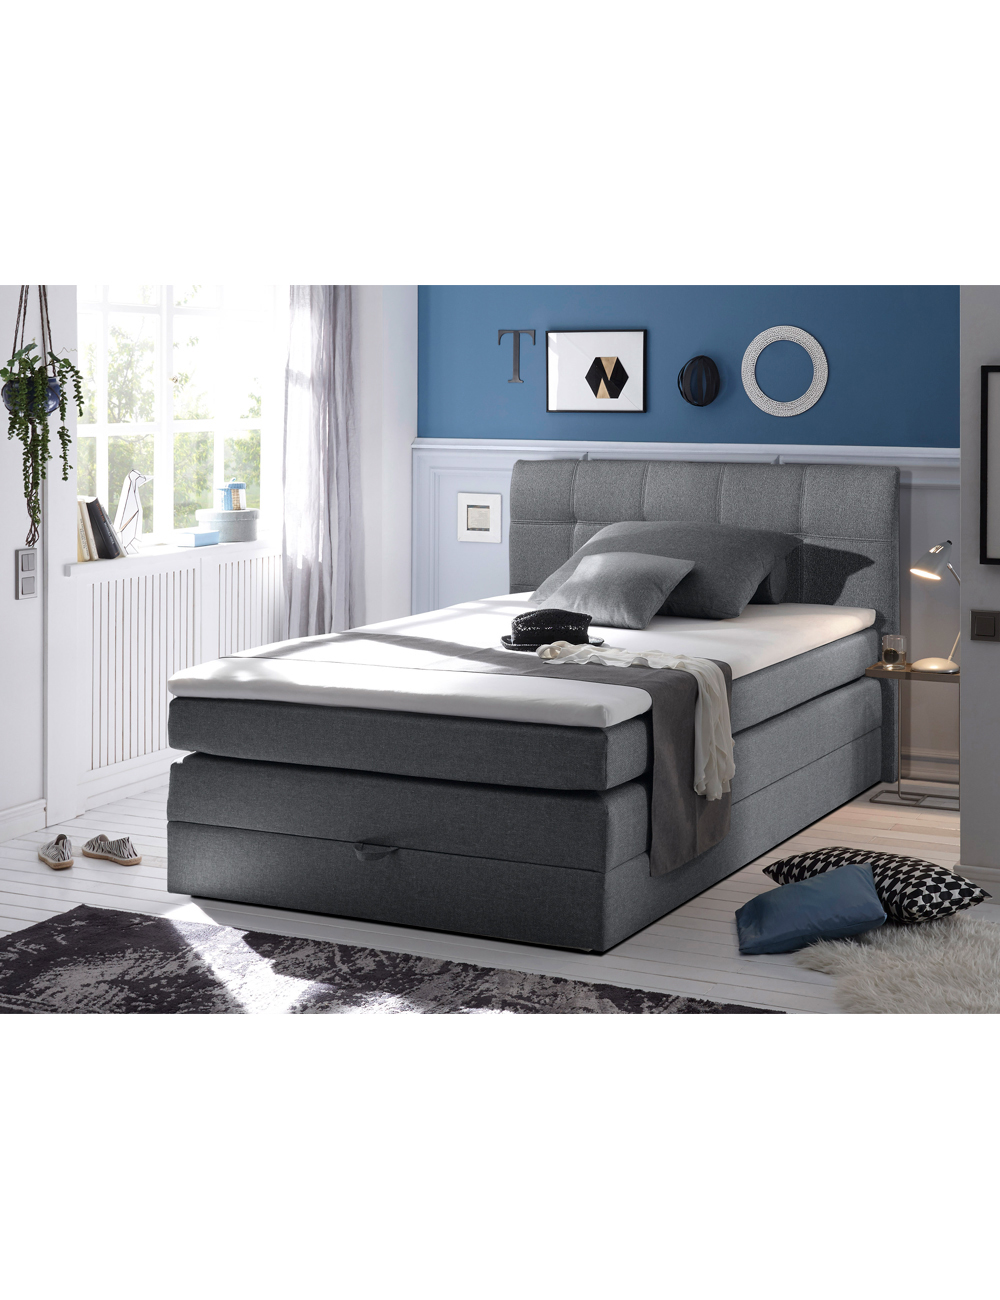 boxspringbett denver 140 x 200 cm. Black Bedroom Furniture Sets. Home Design Ideas